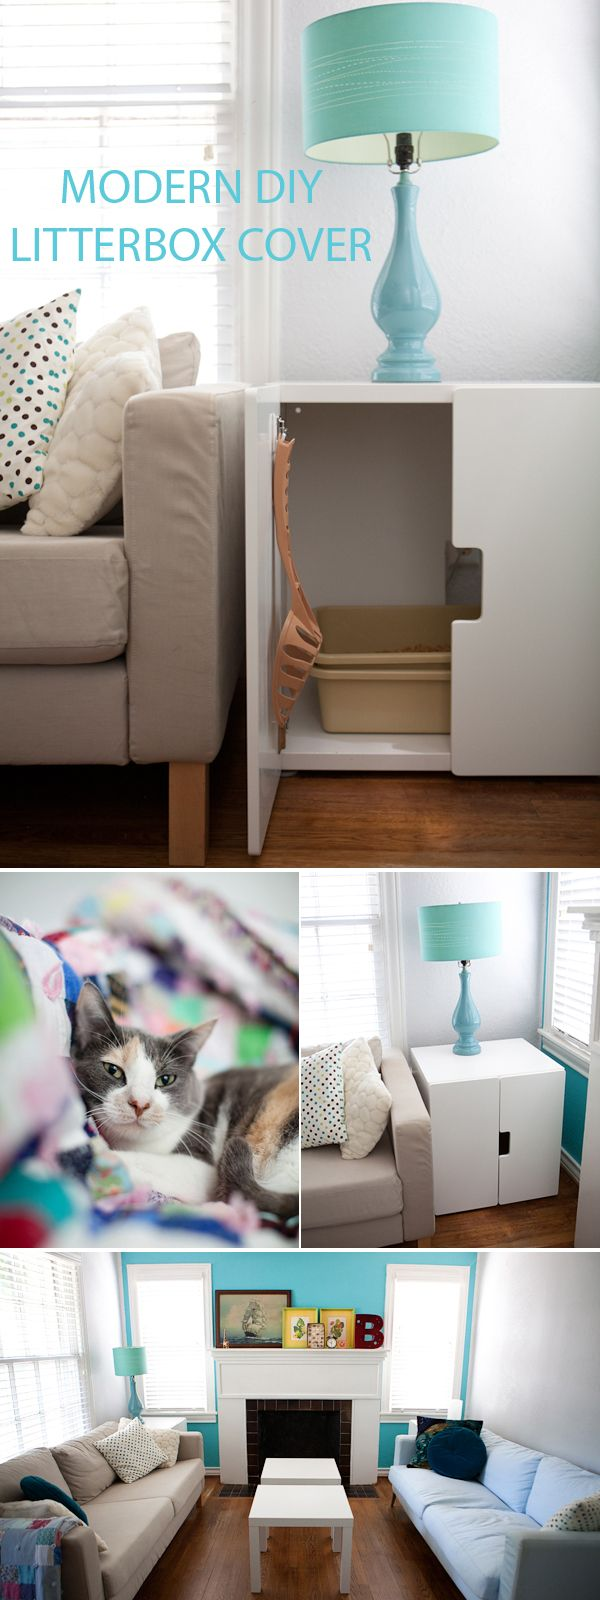 10 Amazing IKEA Hacks Your Pet Will Absolutely Love | Litter Box, Litter Box  Covers And Kitty Litter Boxes